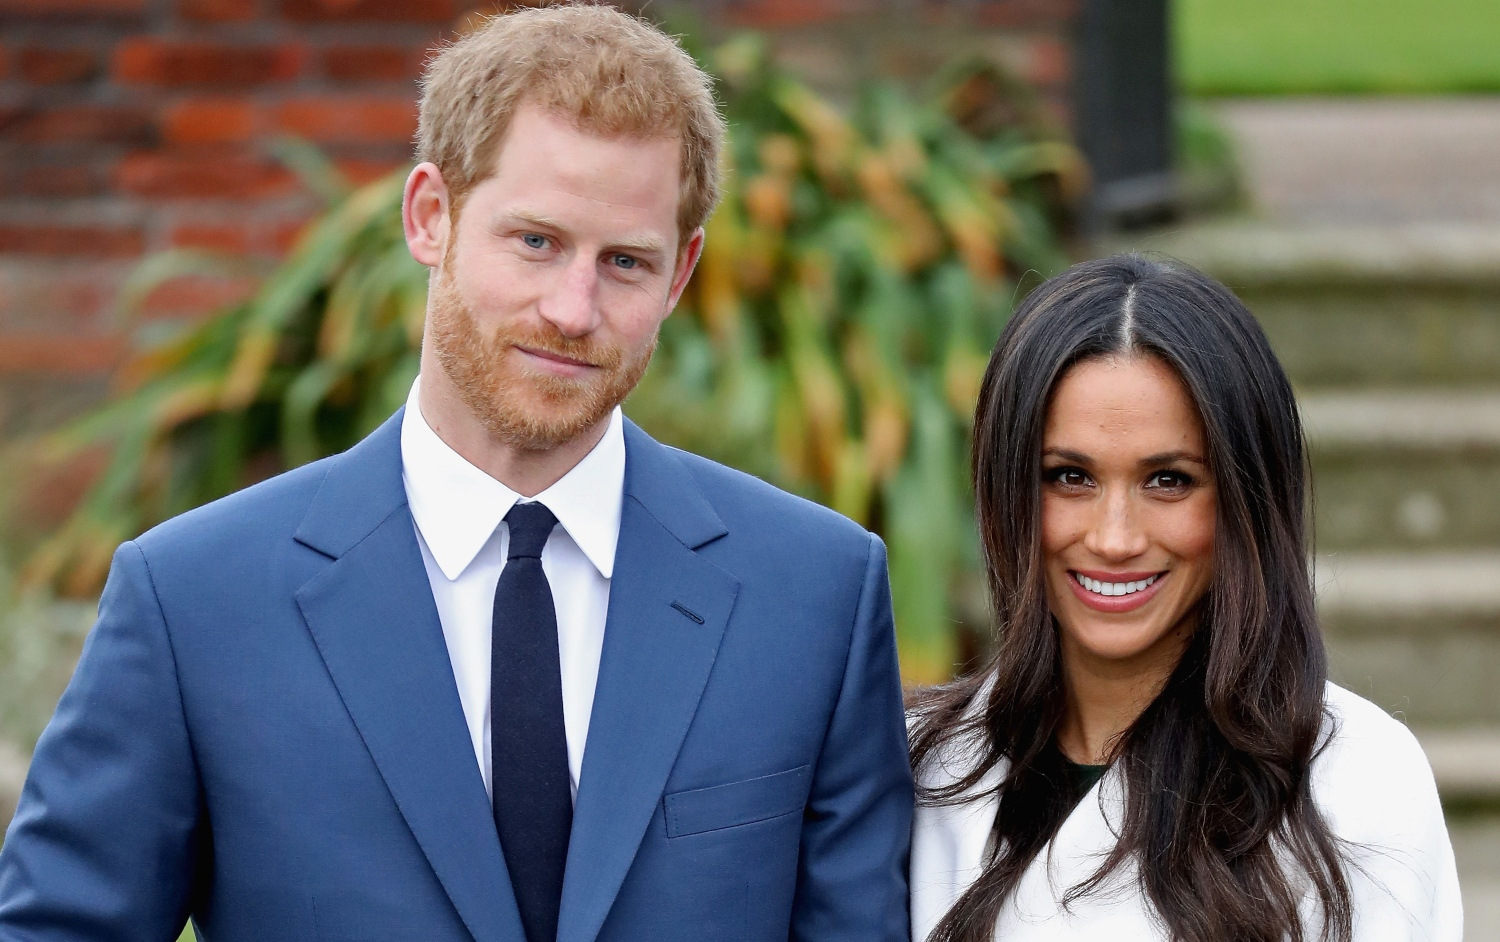 Netflix Wants to Cut a Deal with Meghan Markle and Prince Harry